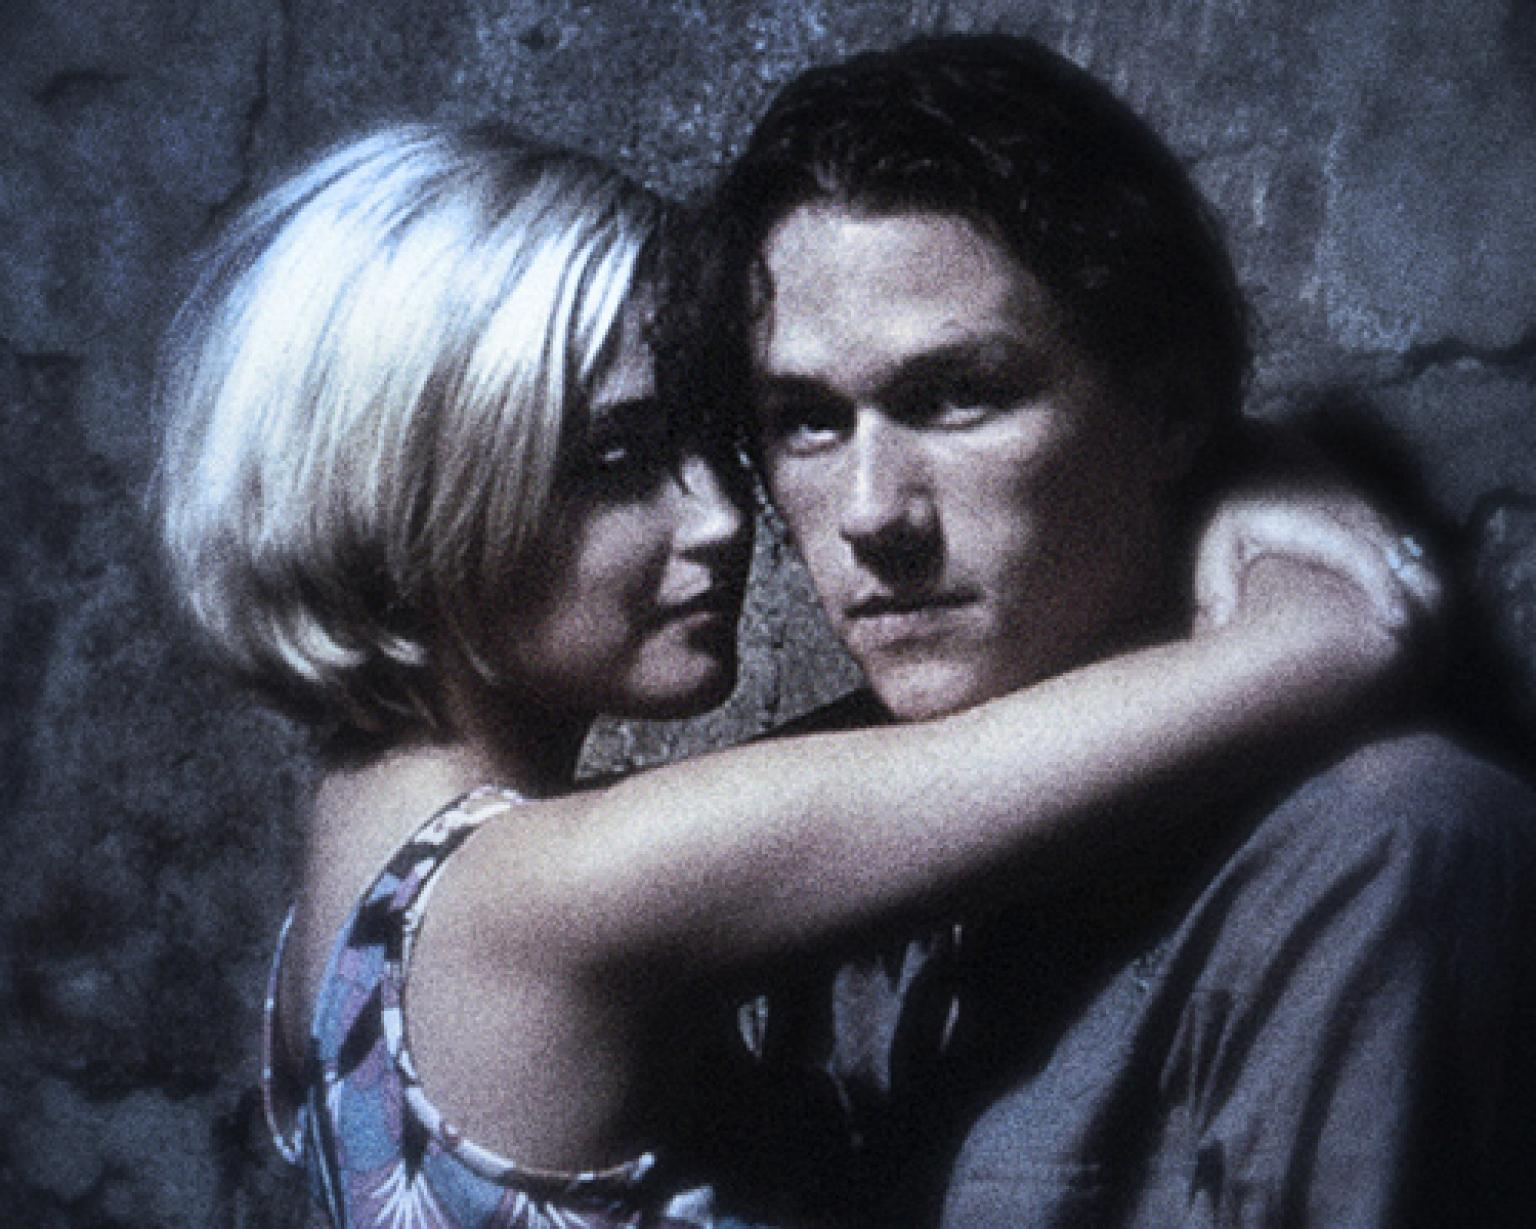 Heath Ledger as Jimmy and Rose Byrne as Alex in a still from Two Hands. The shot is grainy and plays with focus. They are in an embrace while they lean on a wall. Ledger looks at the camera.